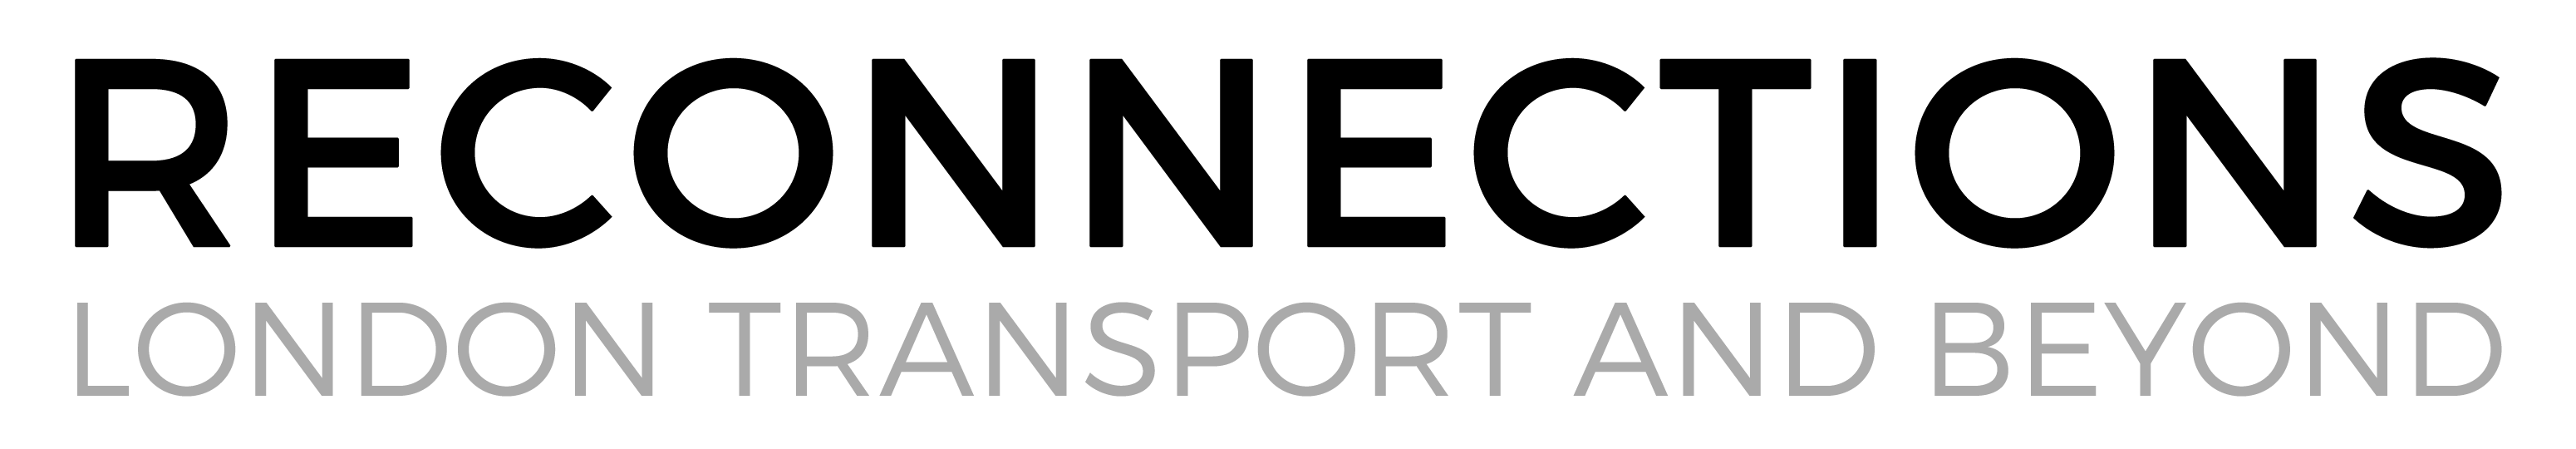 London Reconnections - Covering transport topics in and around London